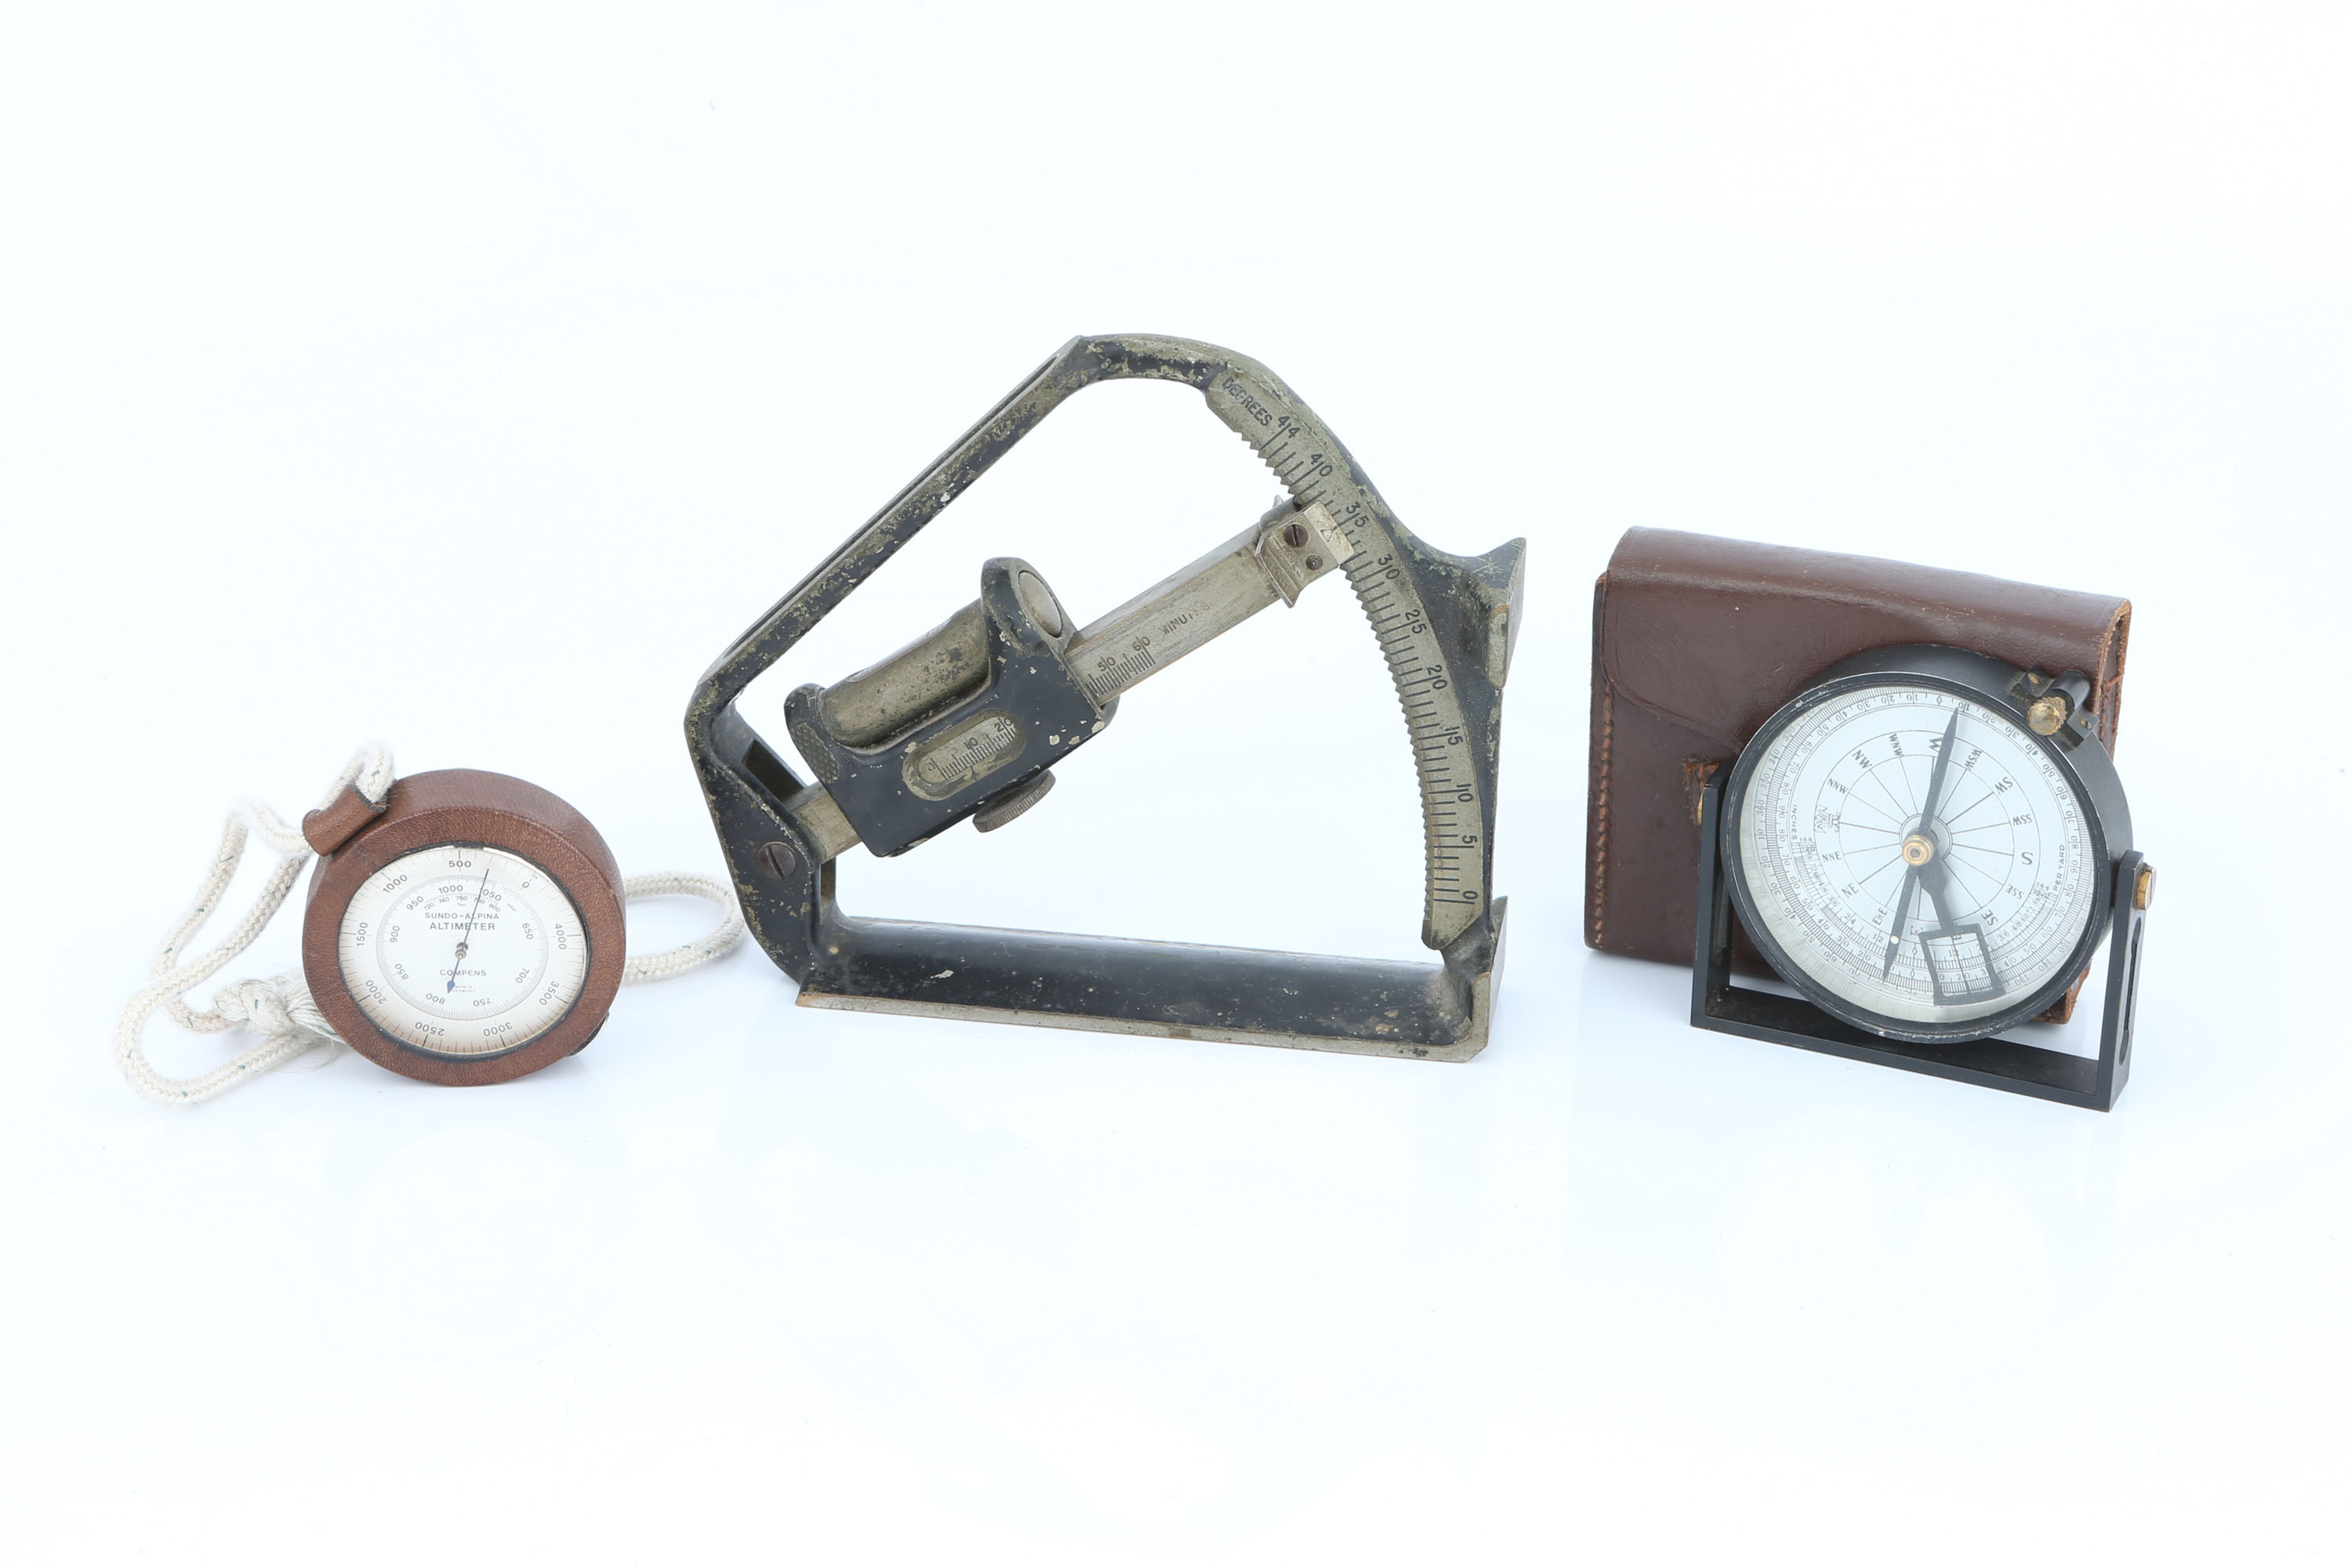 Two Clinometers and an altimeter,